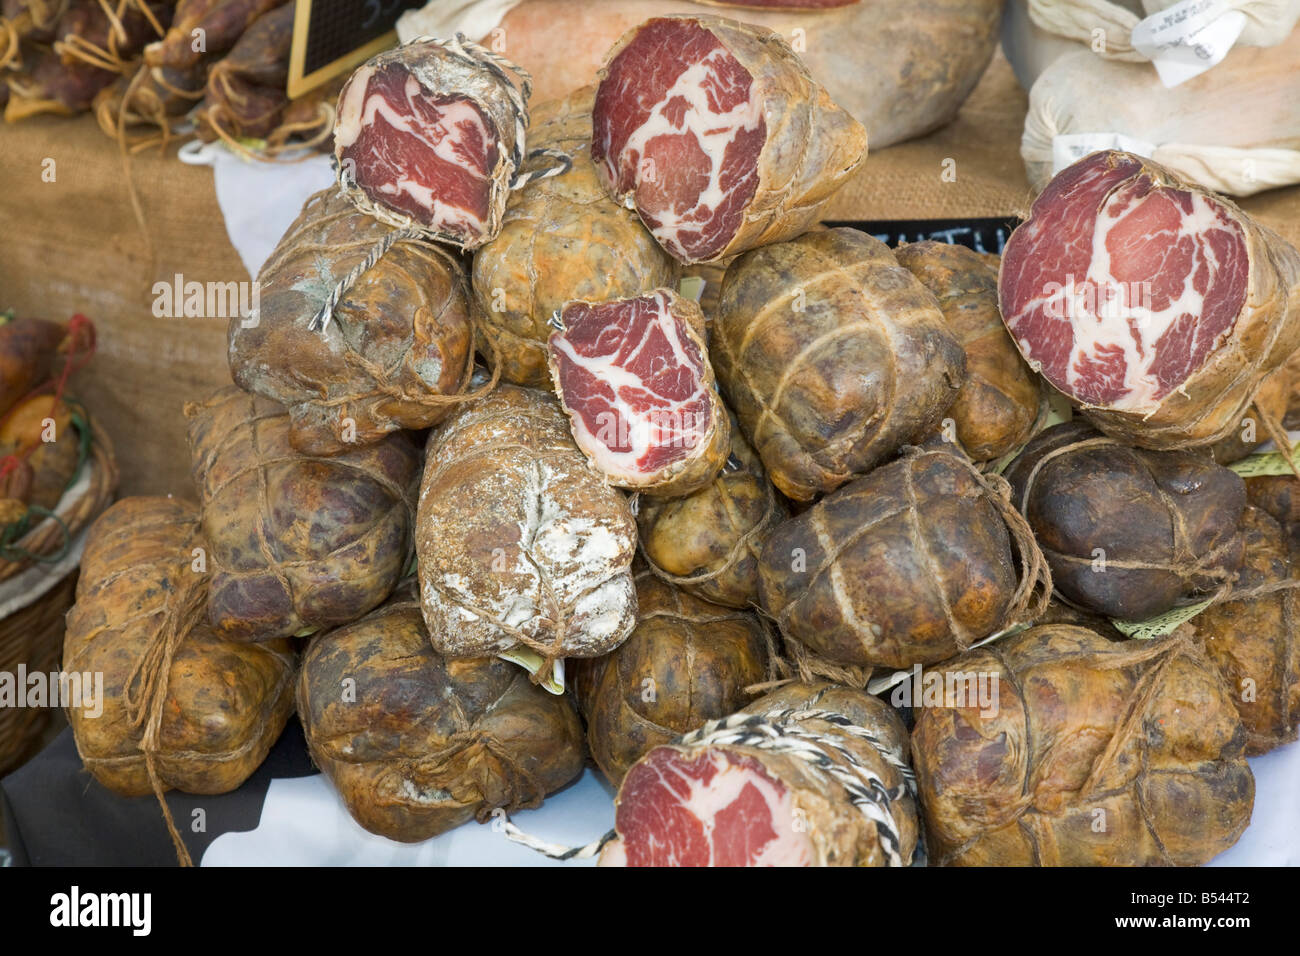 Cafe in the vieux port terra vecchia bastia corsica france stock - Coppa A Corsican Meat Product Is Being Offered At A Farmers Market In Sainte